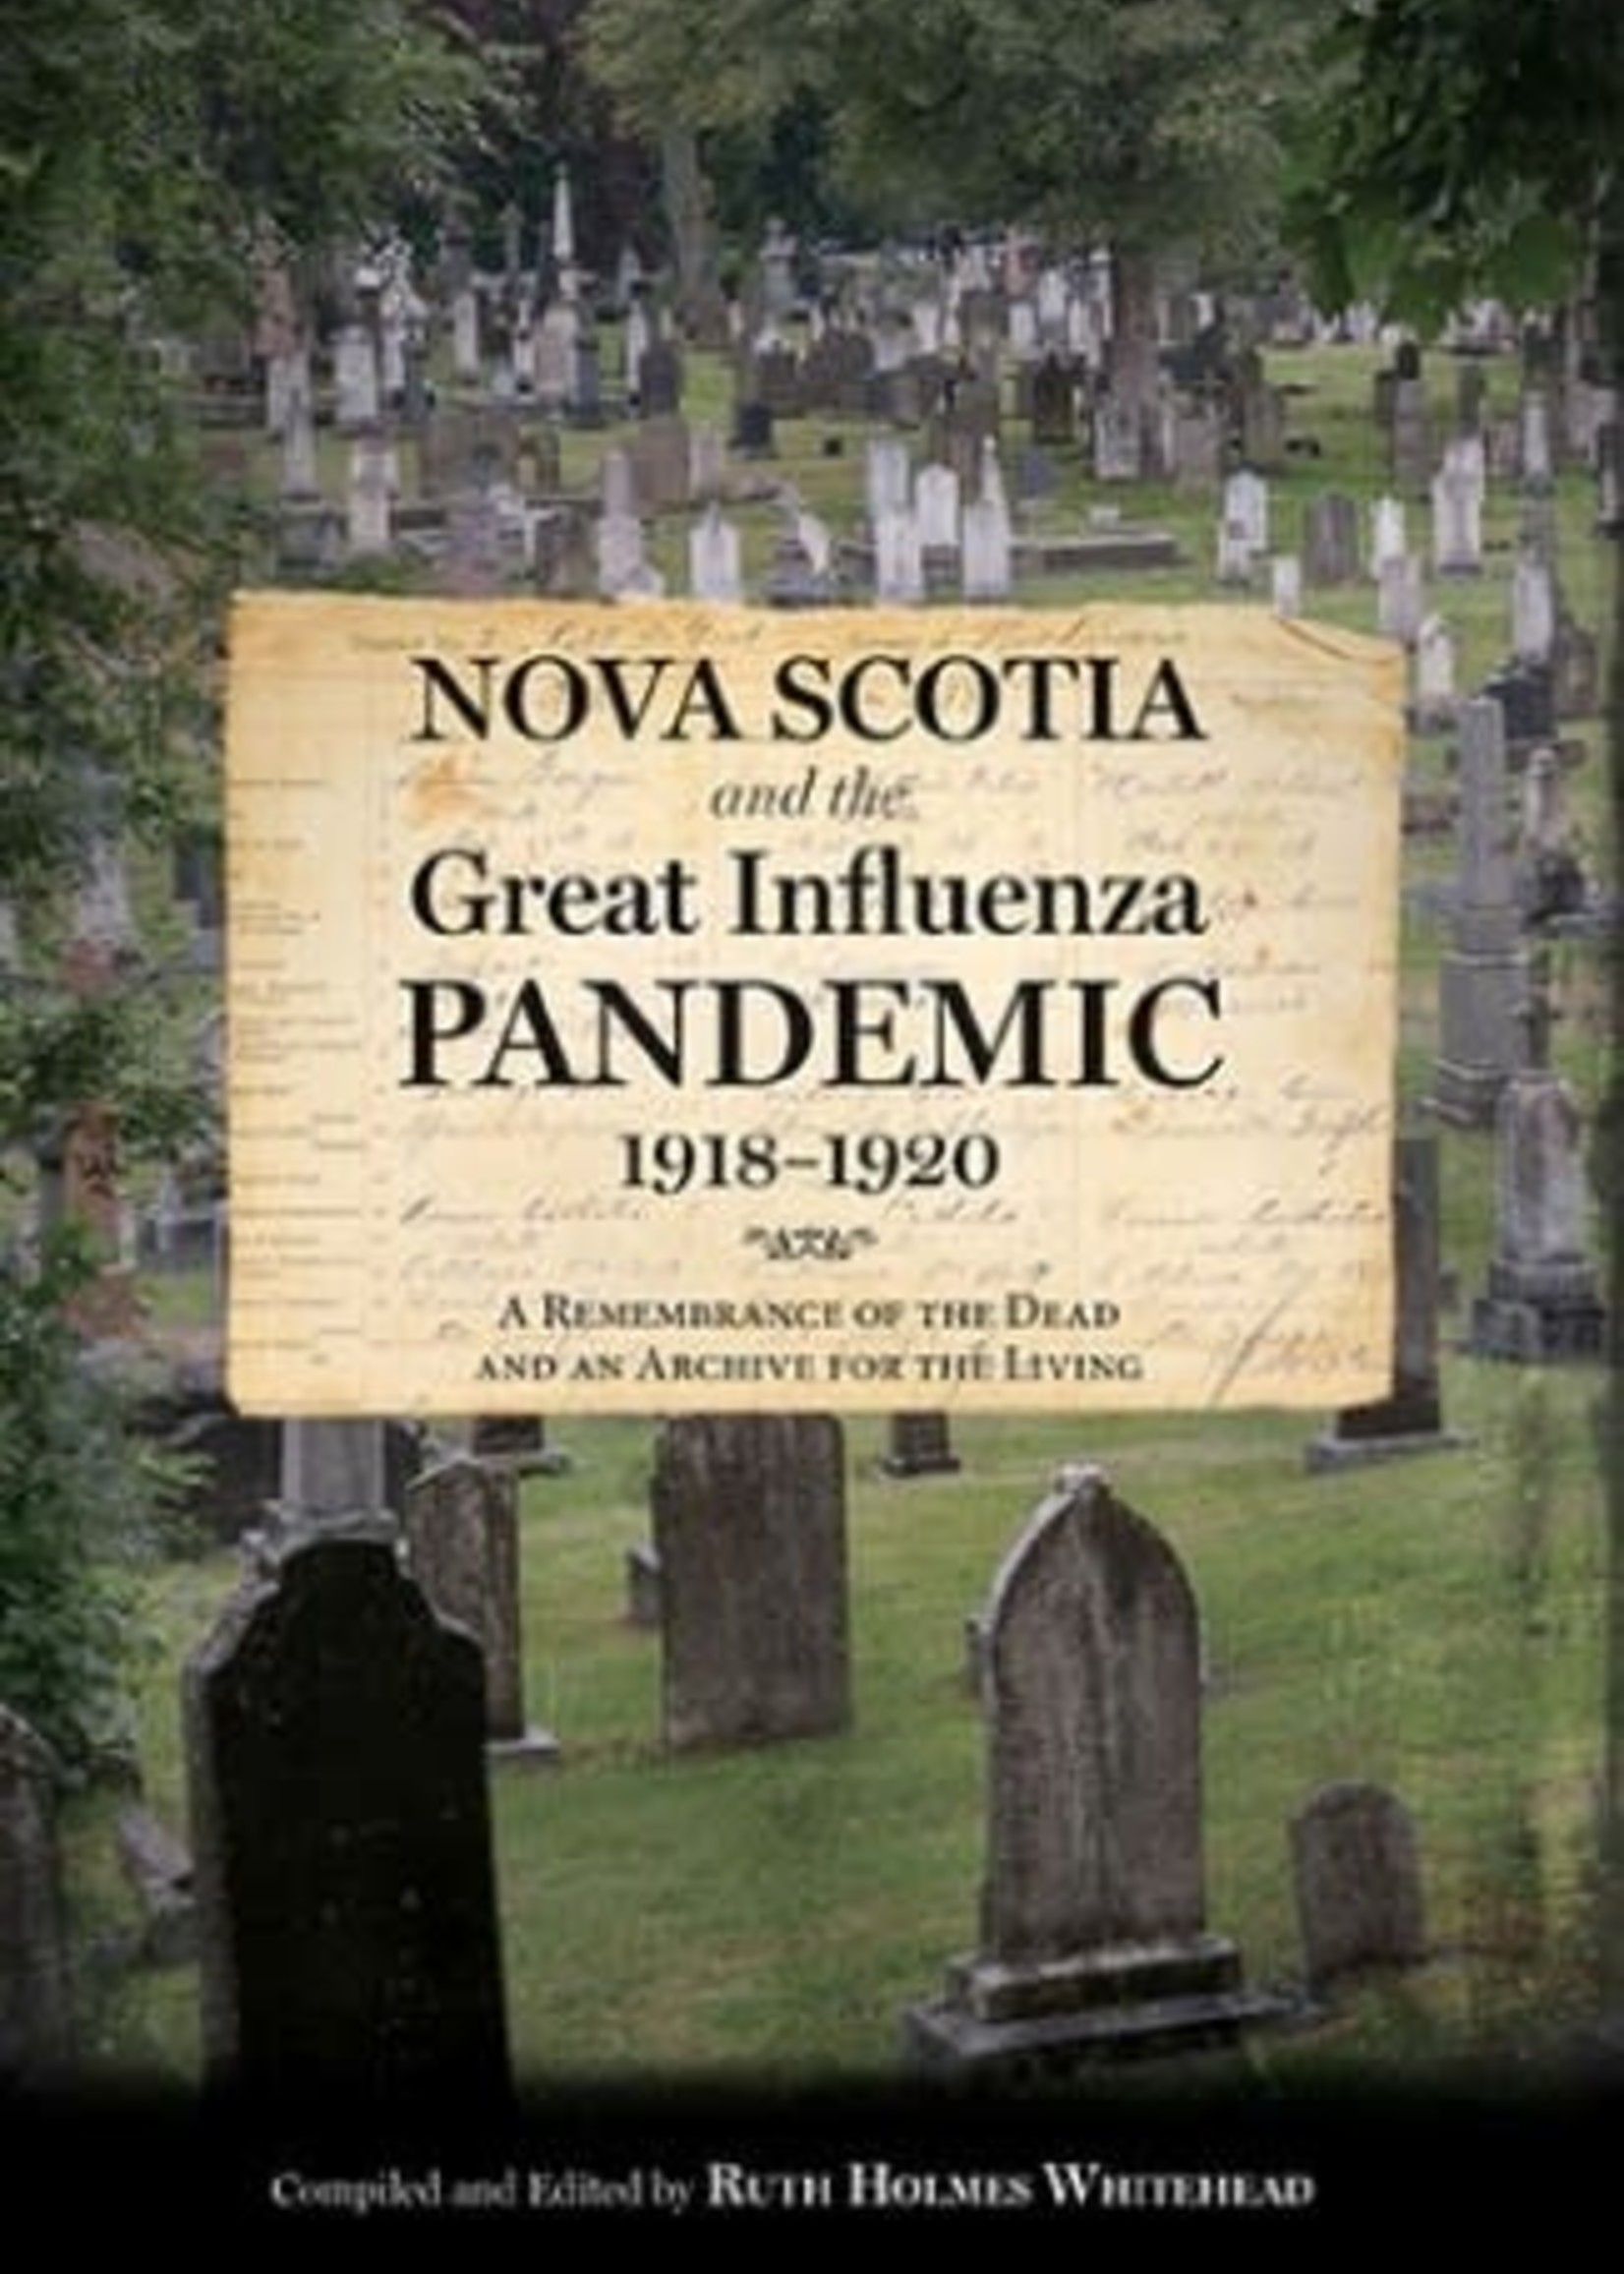 Nova Scotia and the Great Influenza Pandemic, 1918-1920: A Remembrance of the Dead and an Archive for the Living by Ruth Holmes Whitehead